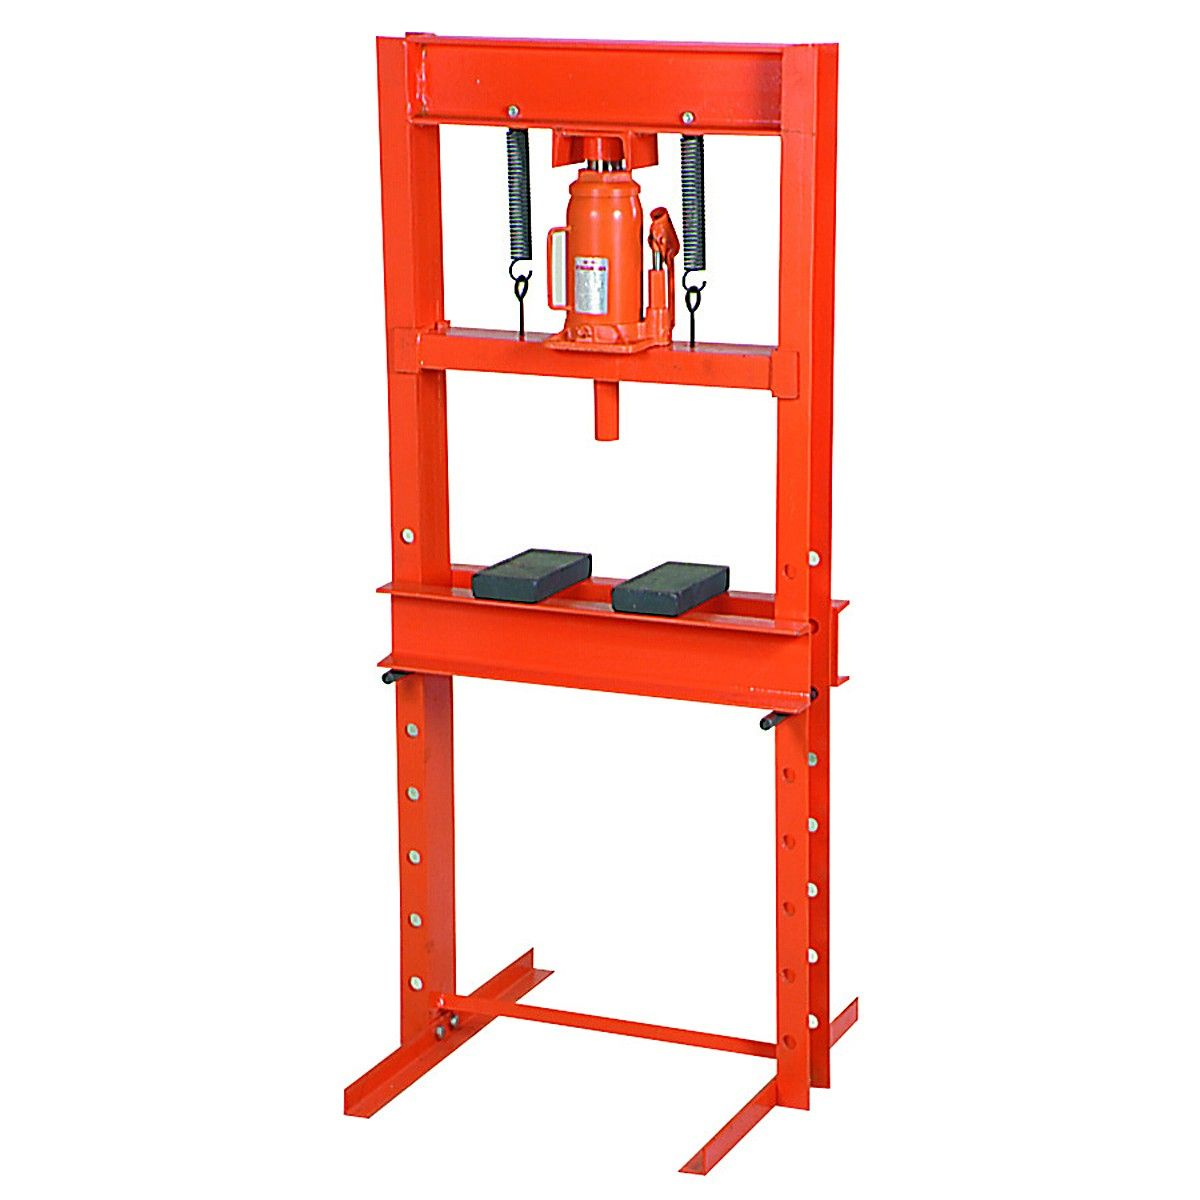 20 Ton H Frame Industrial Heavy Duty Floor Shop Press Shop Press Hydraulic Shop Press Harbor Freight Tools